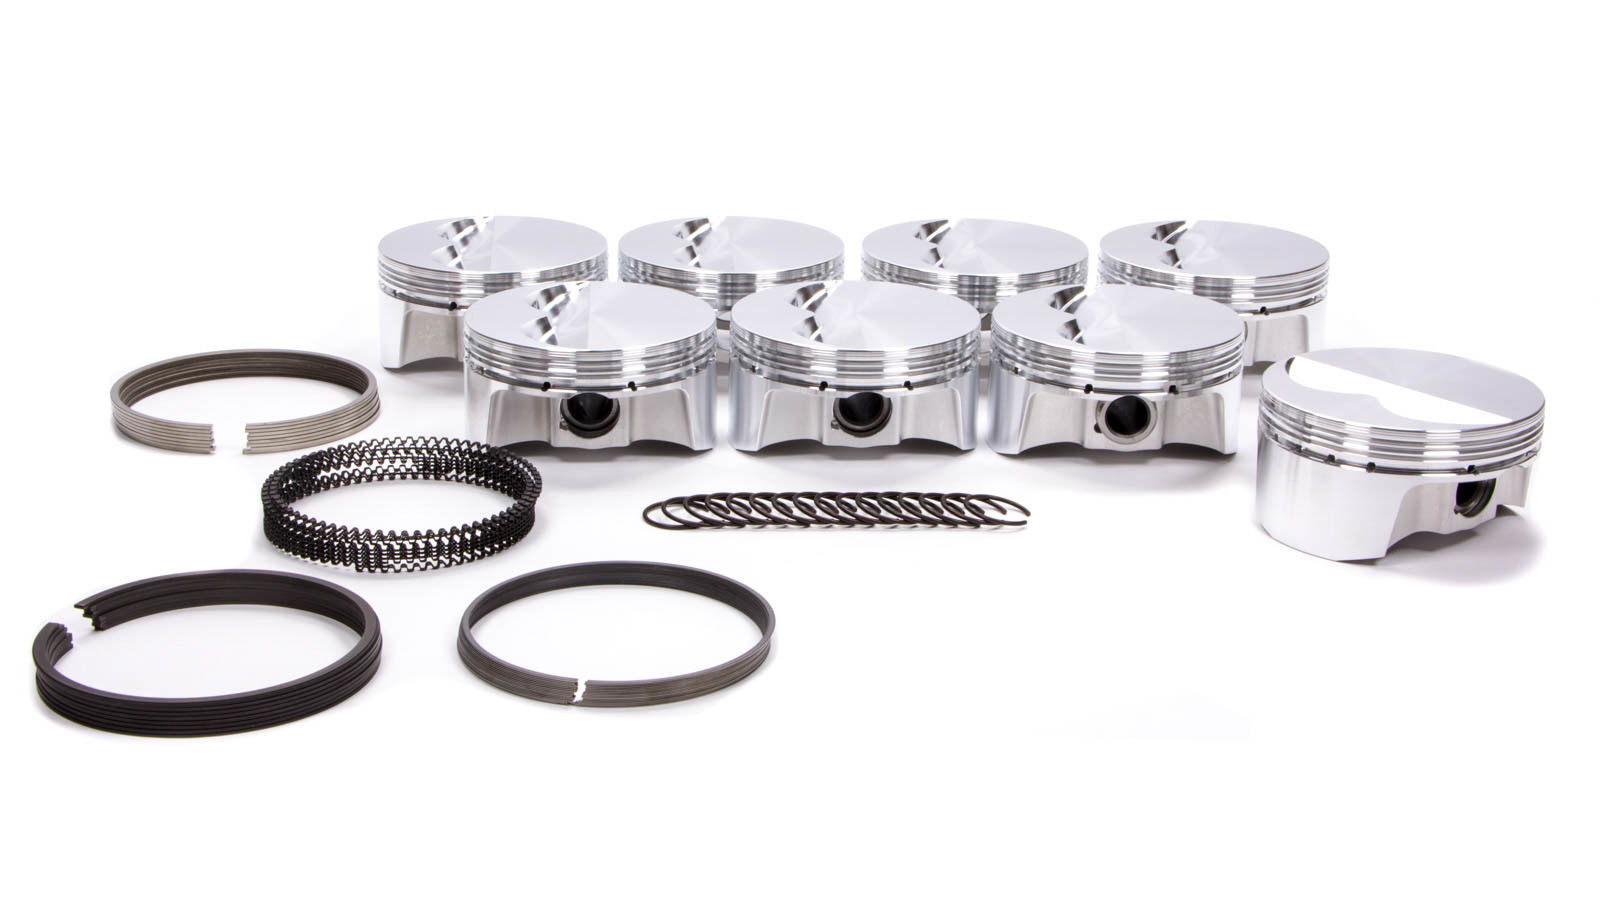 Bullet Pistons BC1025-030-8 Piston and Ring, Forged, 4.030 in Bore, 1.5 x 1.5 x 3 mm Ring Grooves, Minus 6.8 cc, Small Block Chevy, Kit